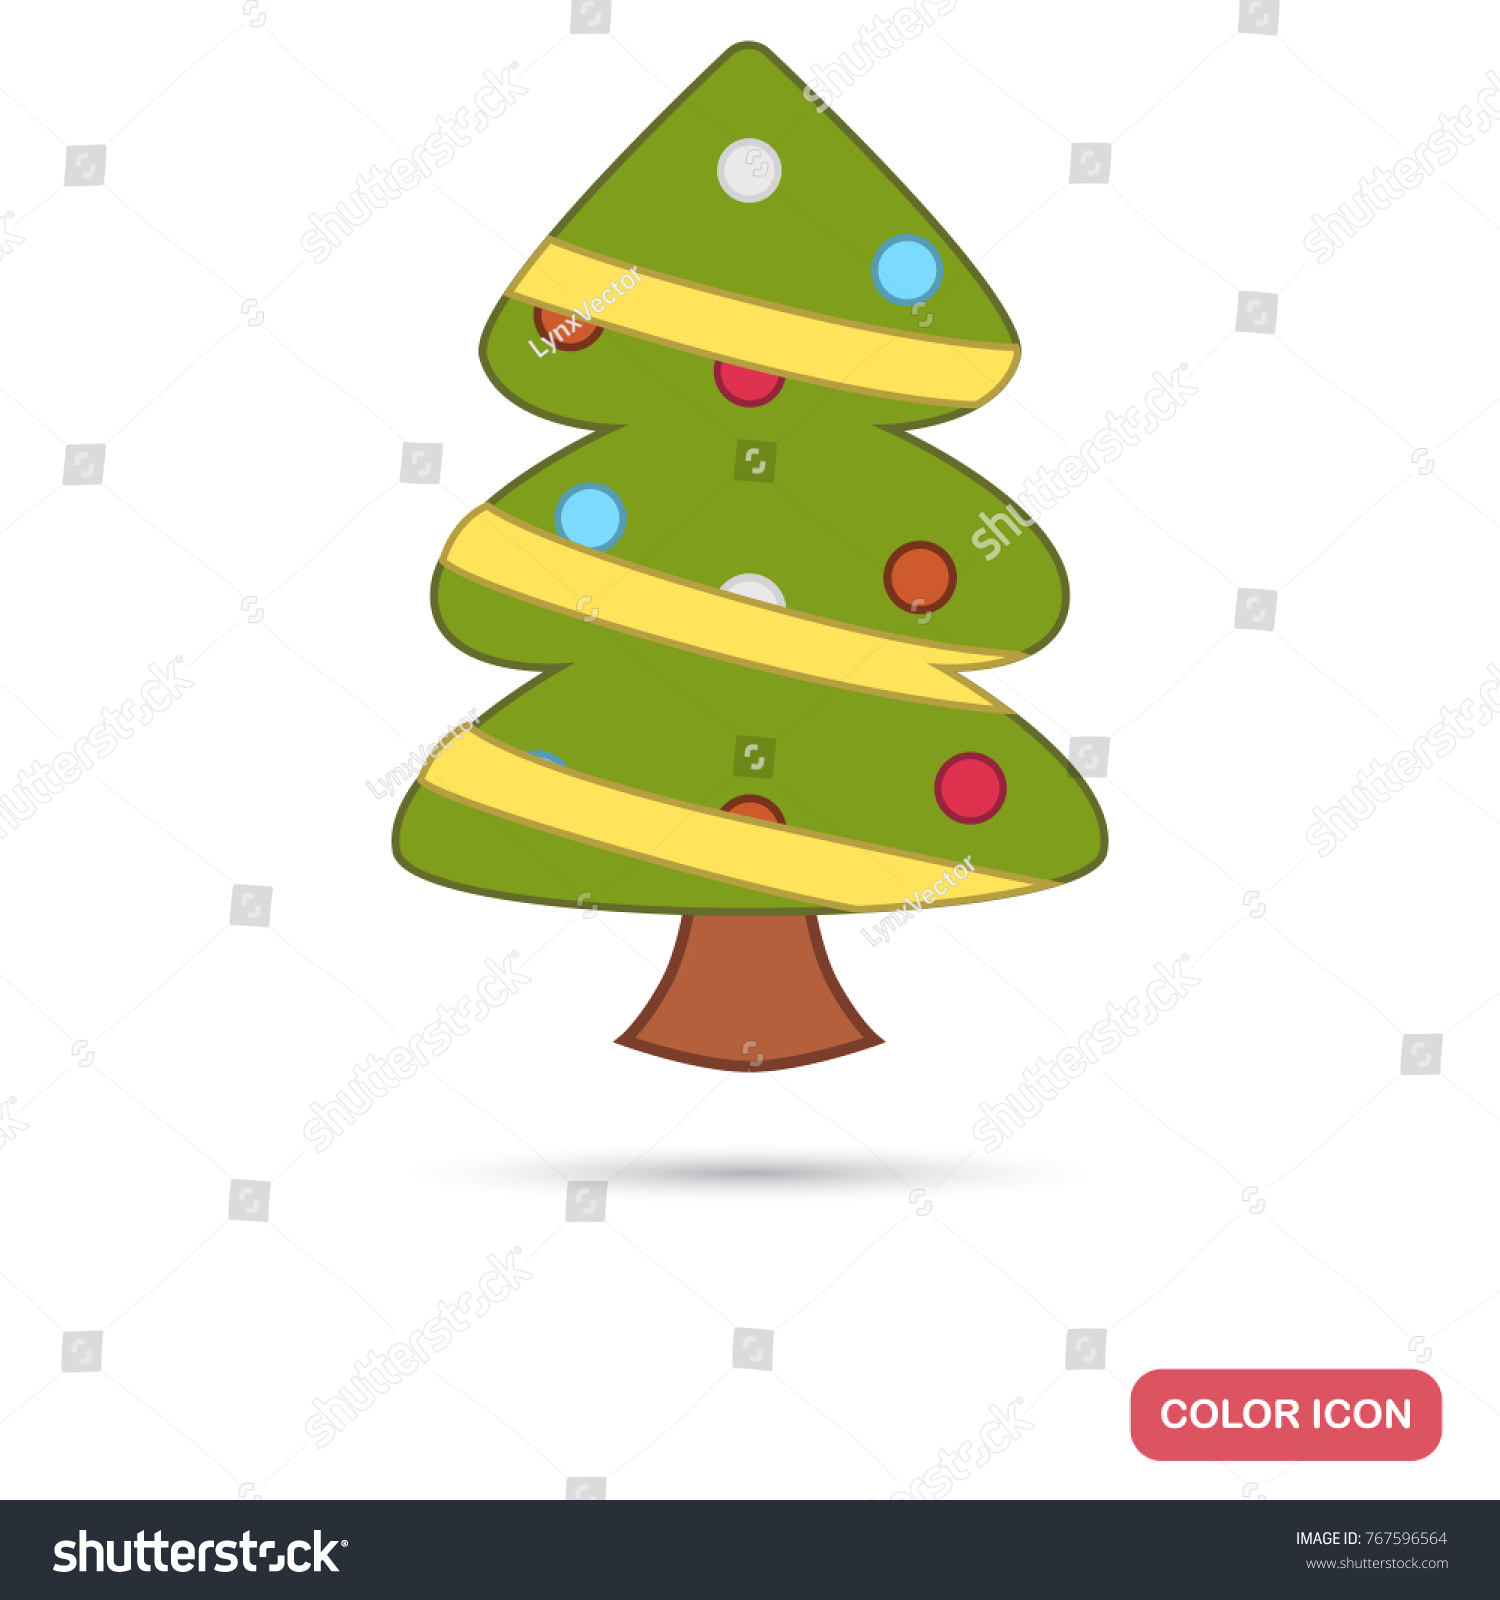 Christmas Tree Color Flat Icon Web Stock Vector 767596564 - Shutterstock